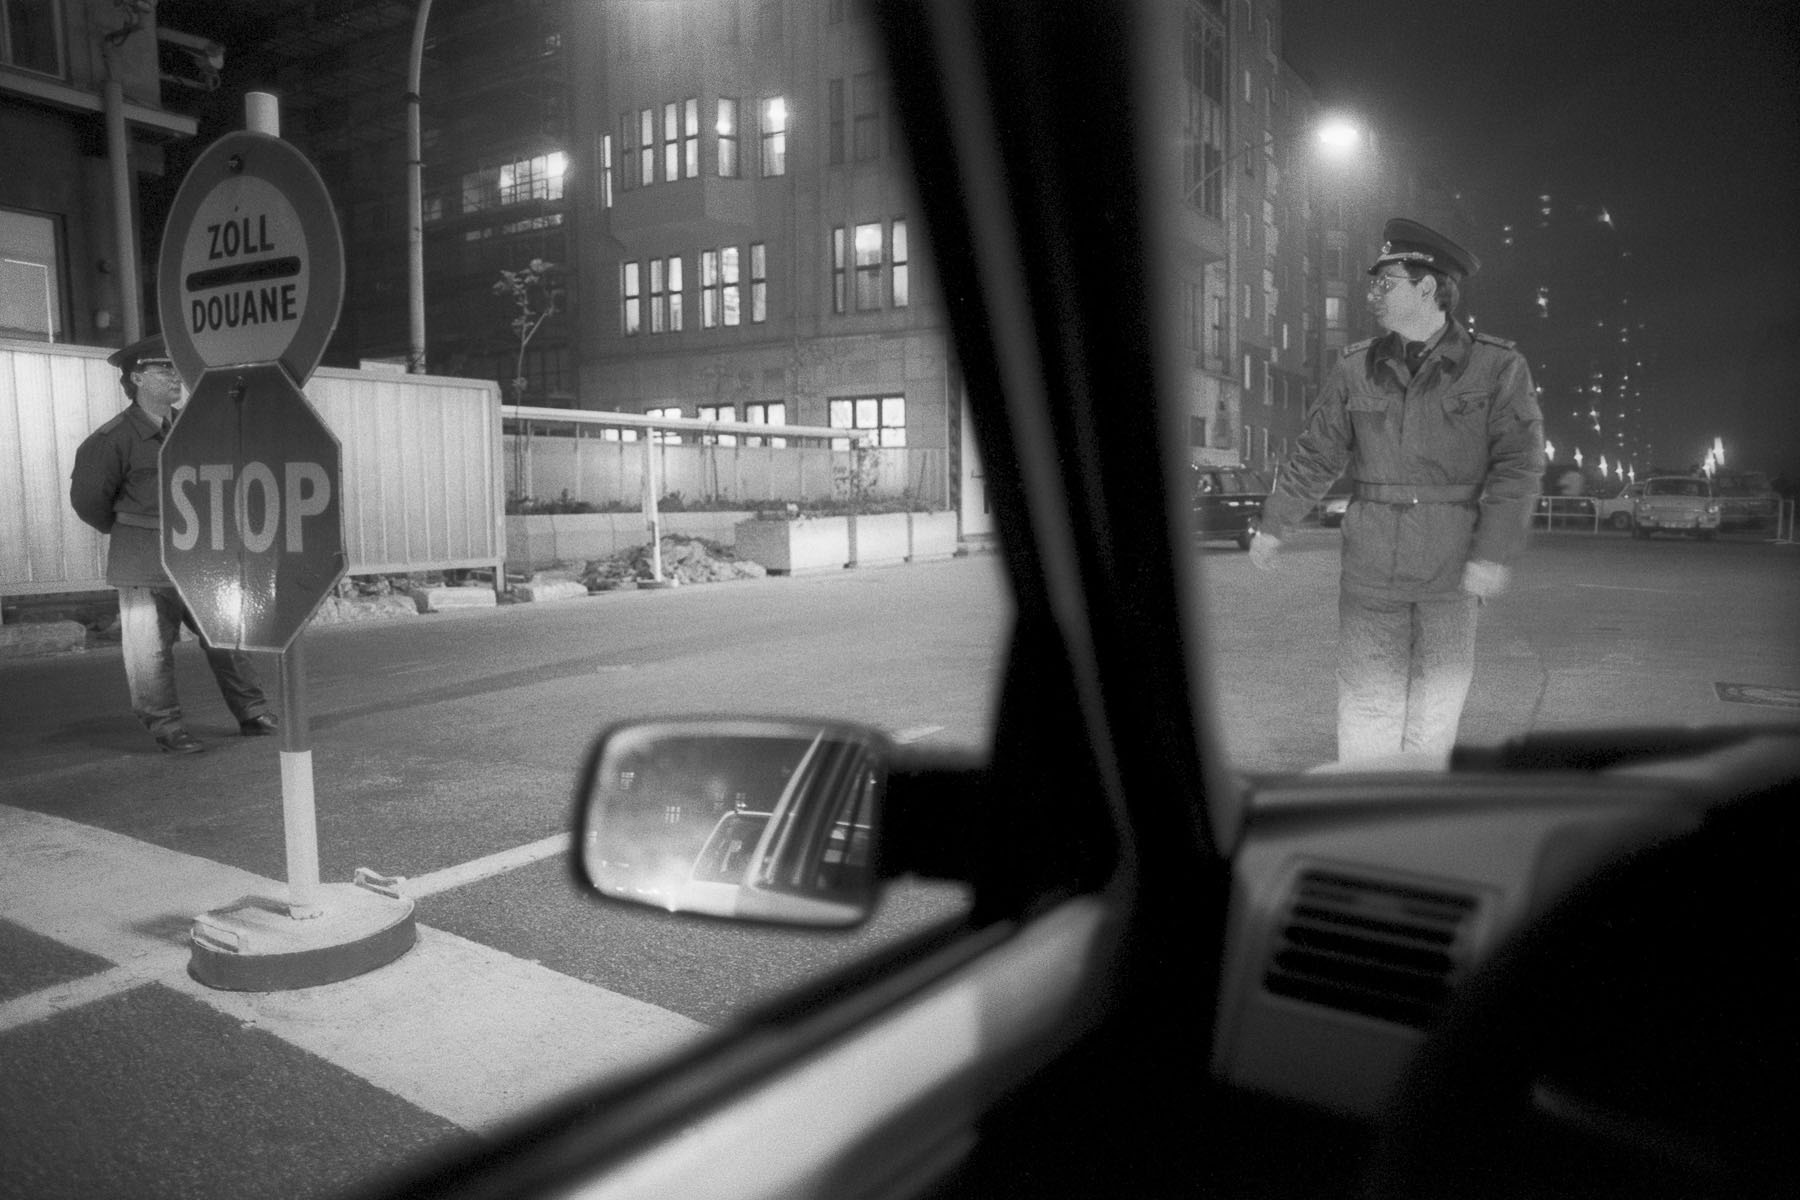 East-German soldier at Checkpoint Charlie, crossing point between East and West Berlin on November 10, 1989